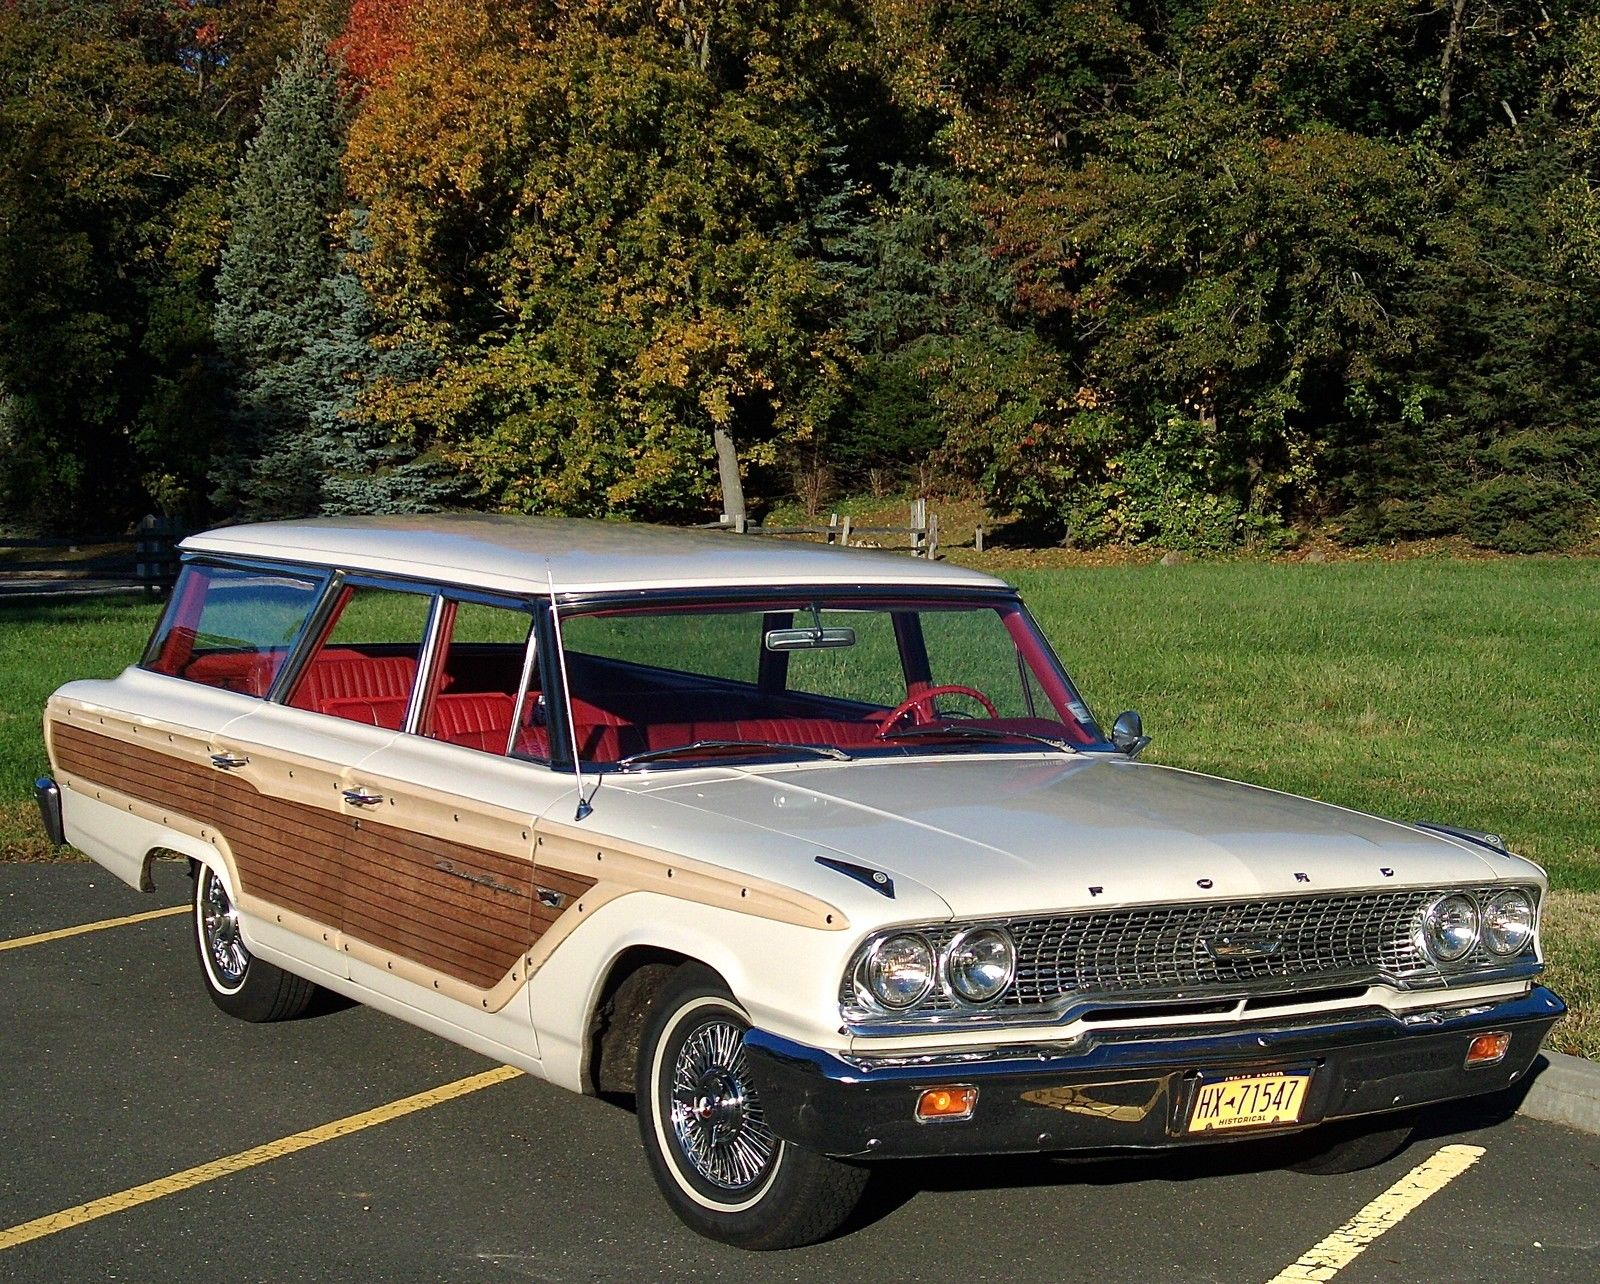 1963 Ford Country Squire 09-15-15